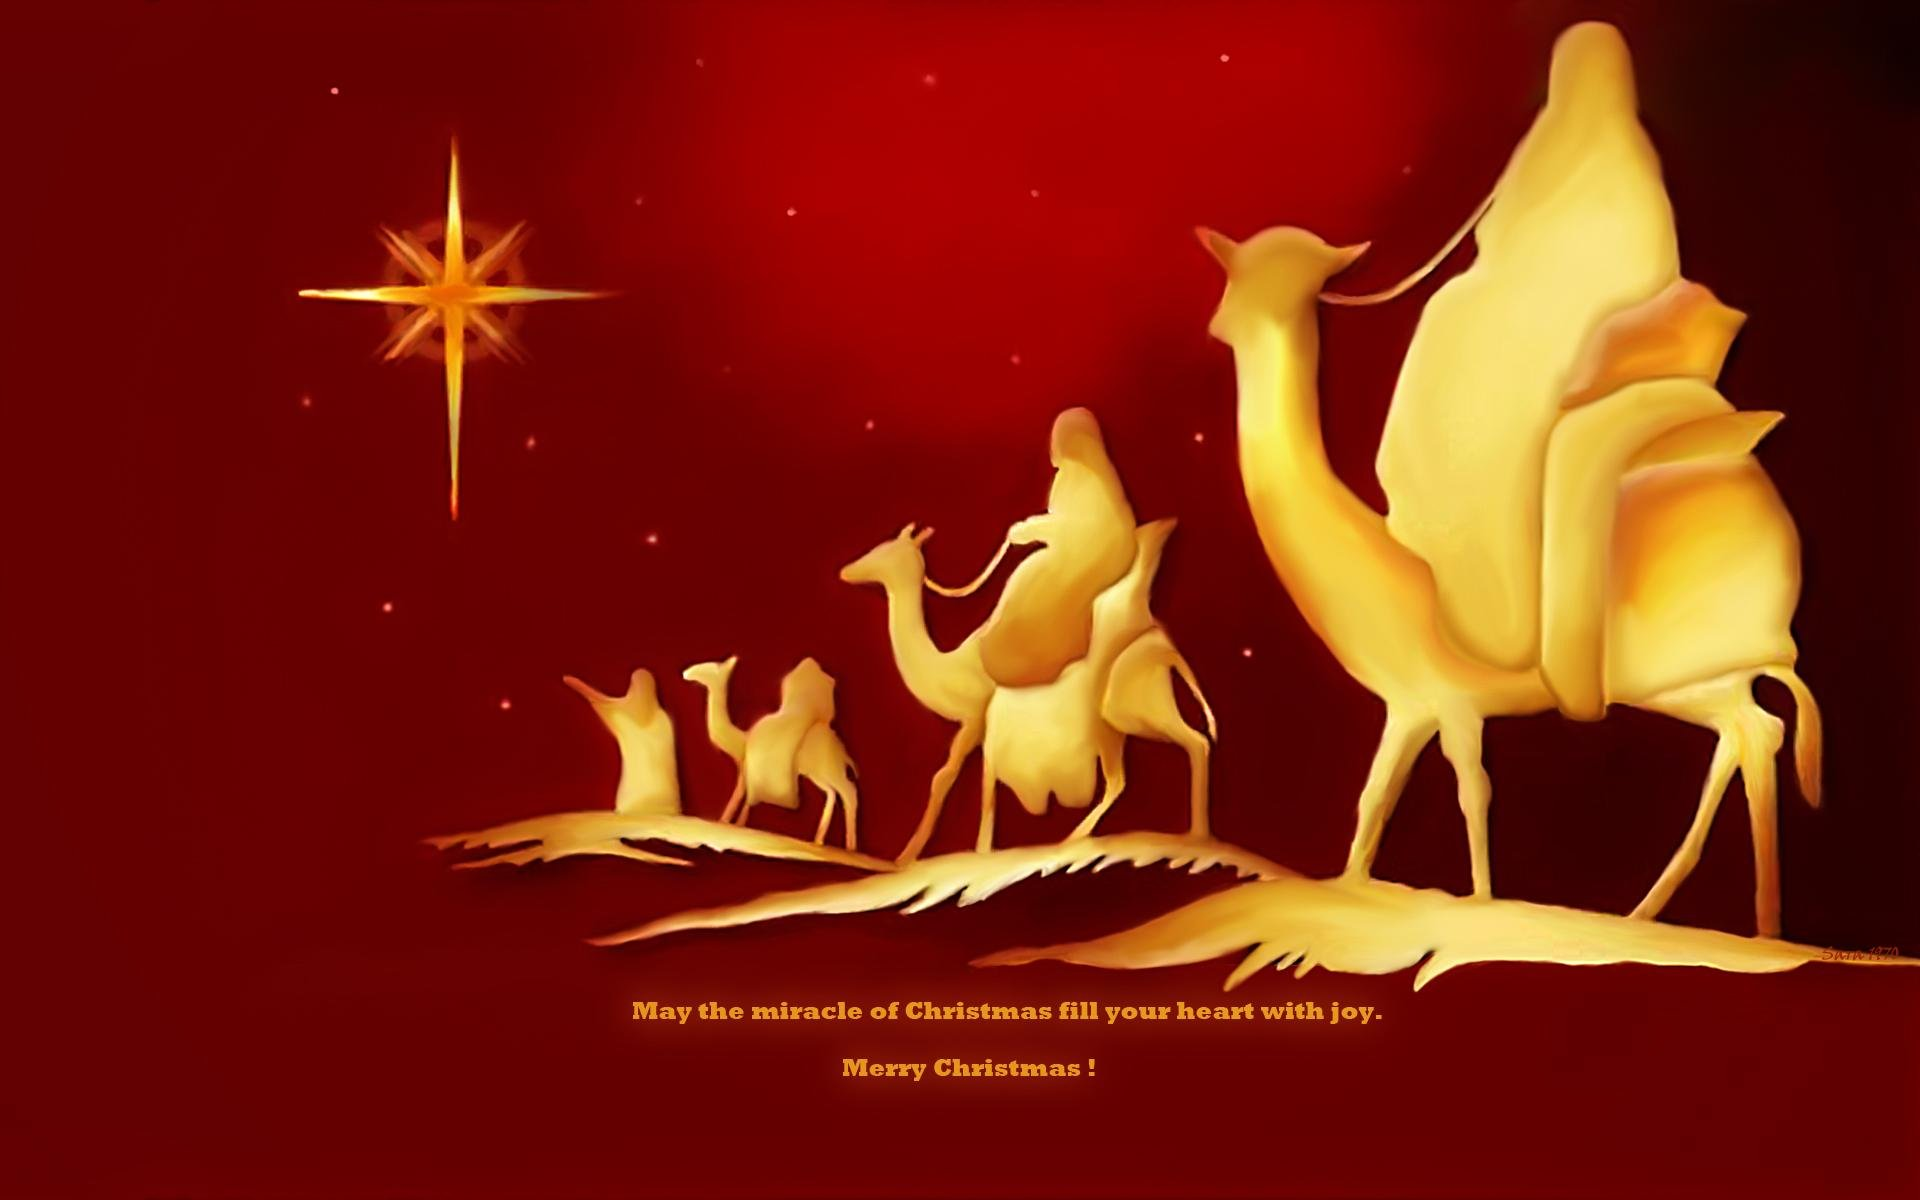 magi-star-of-bethlehem-christmas.jpg